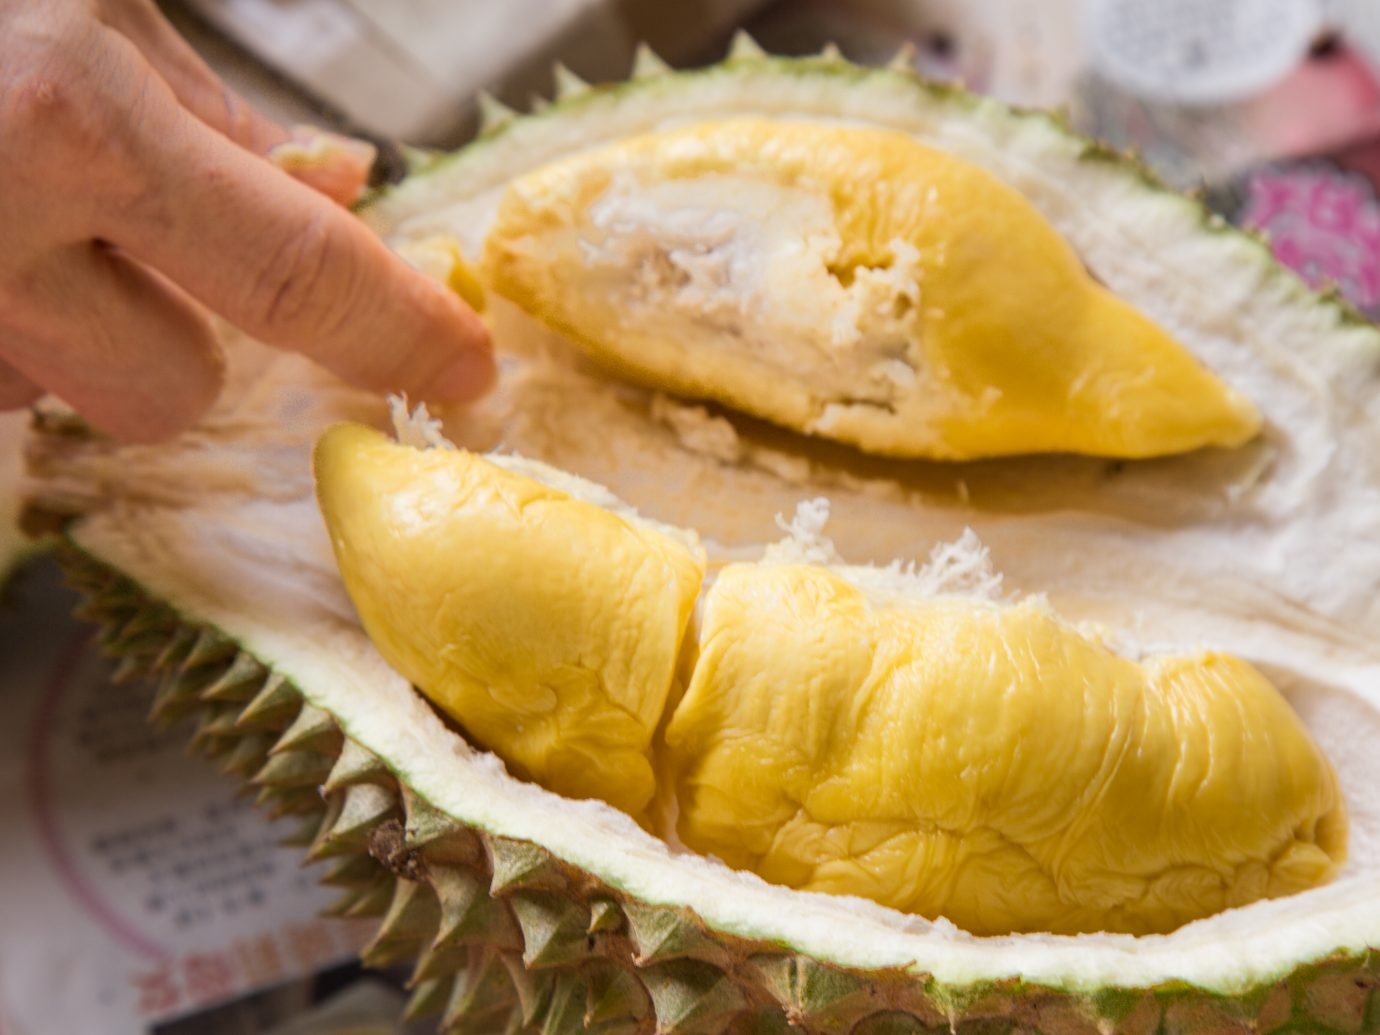 musang king durian fruit